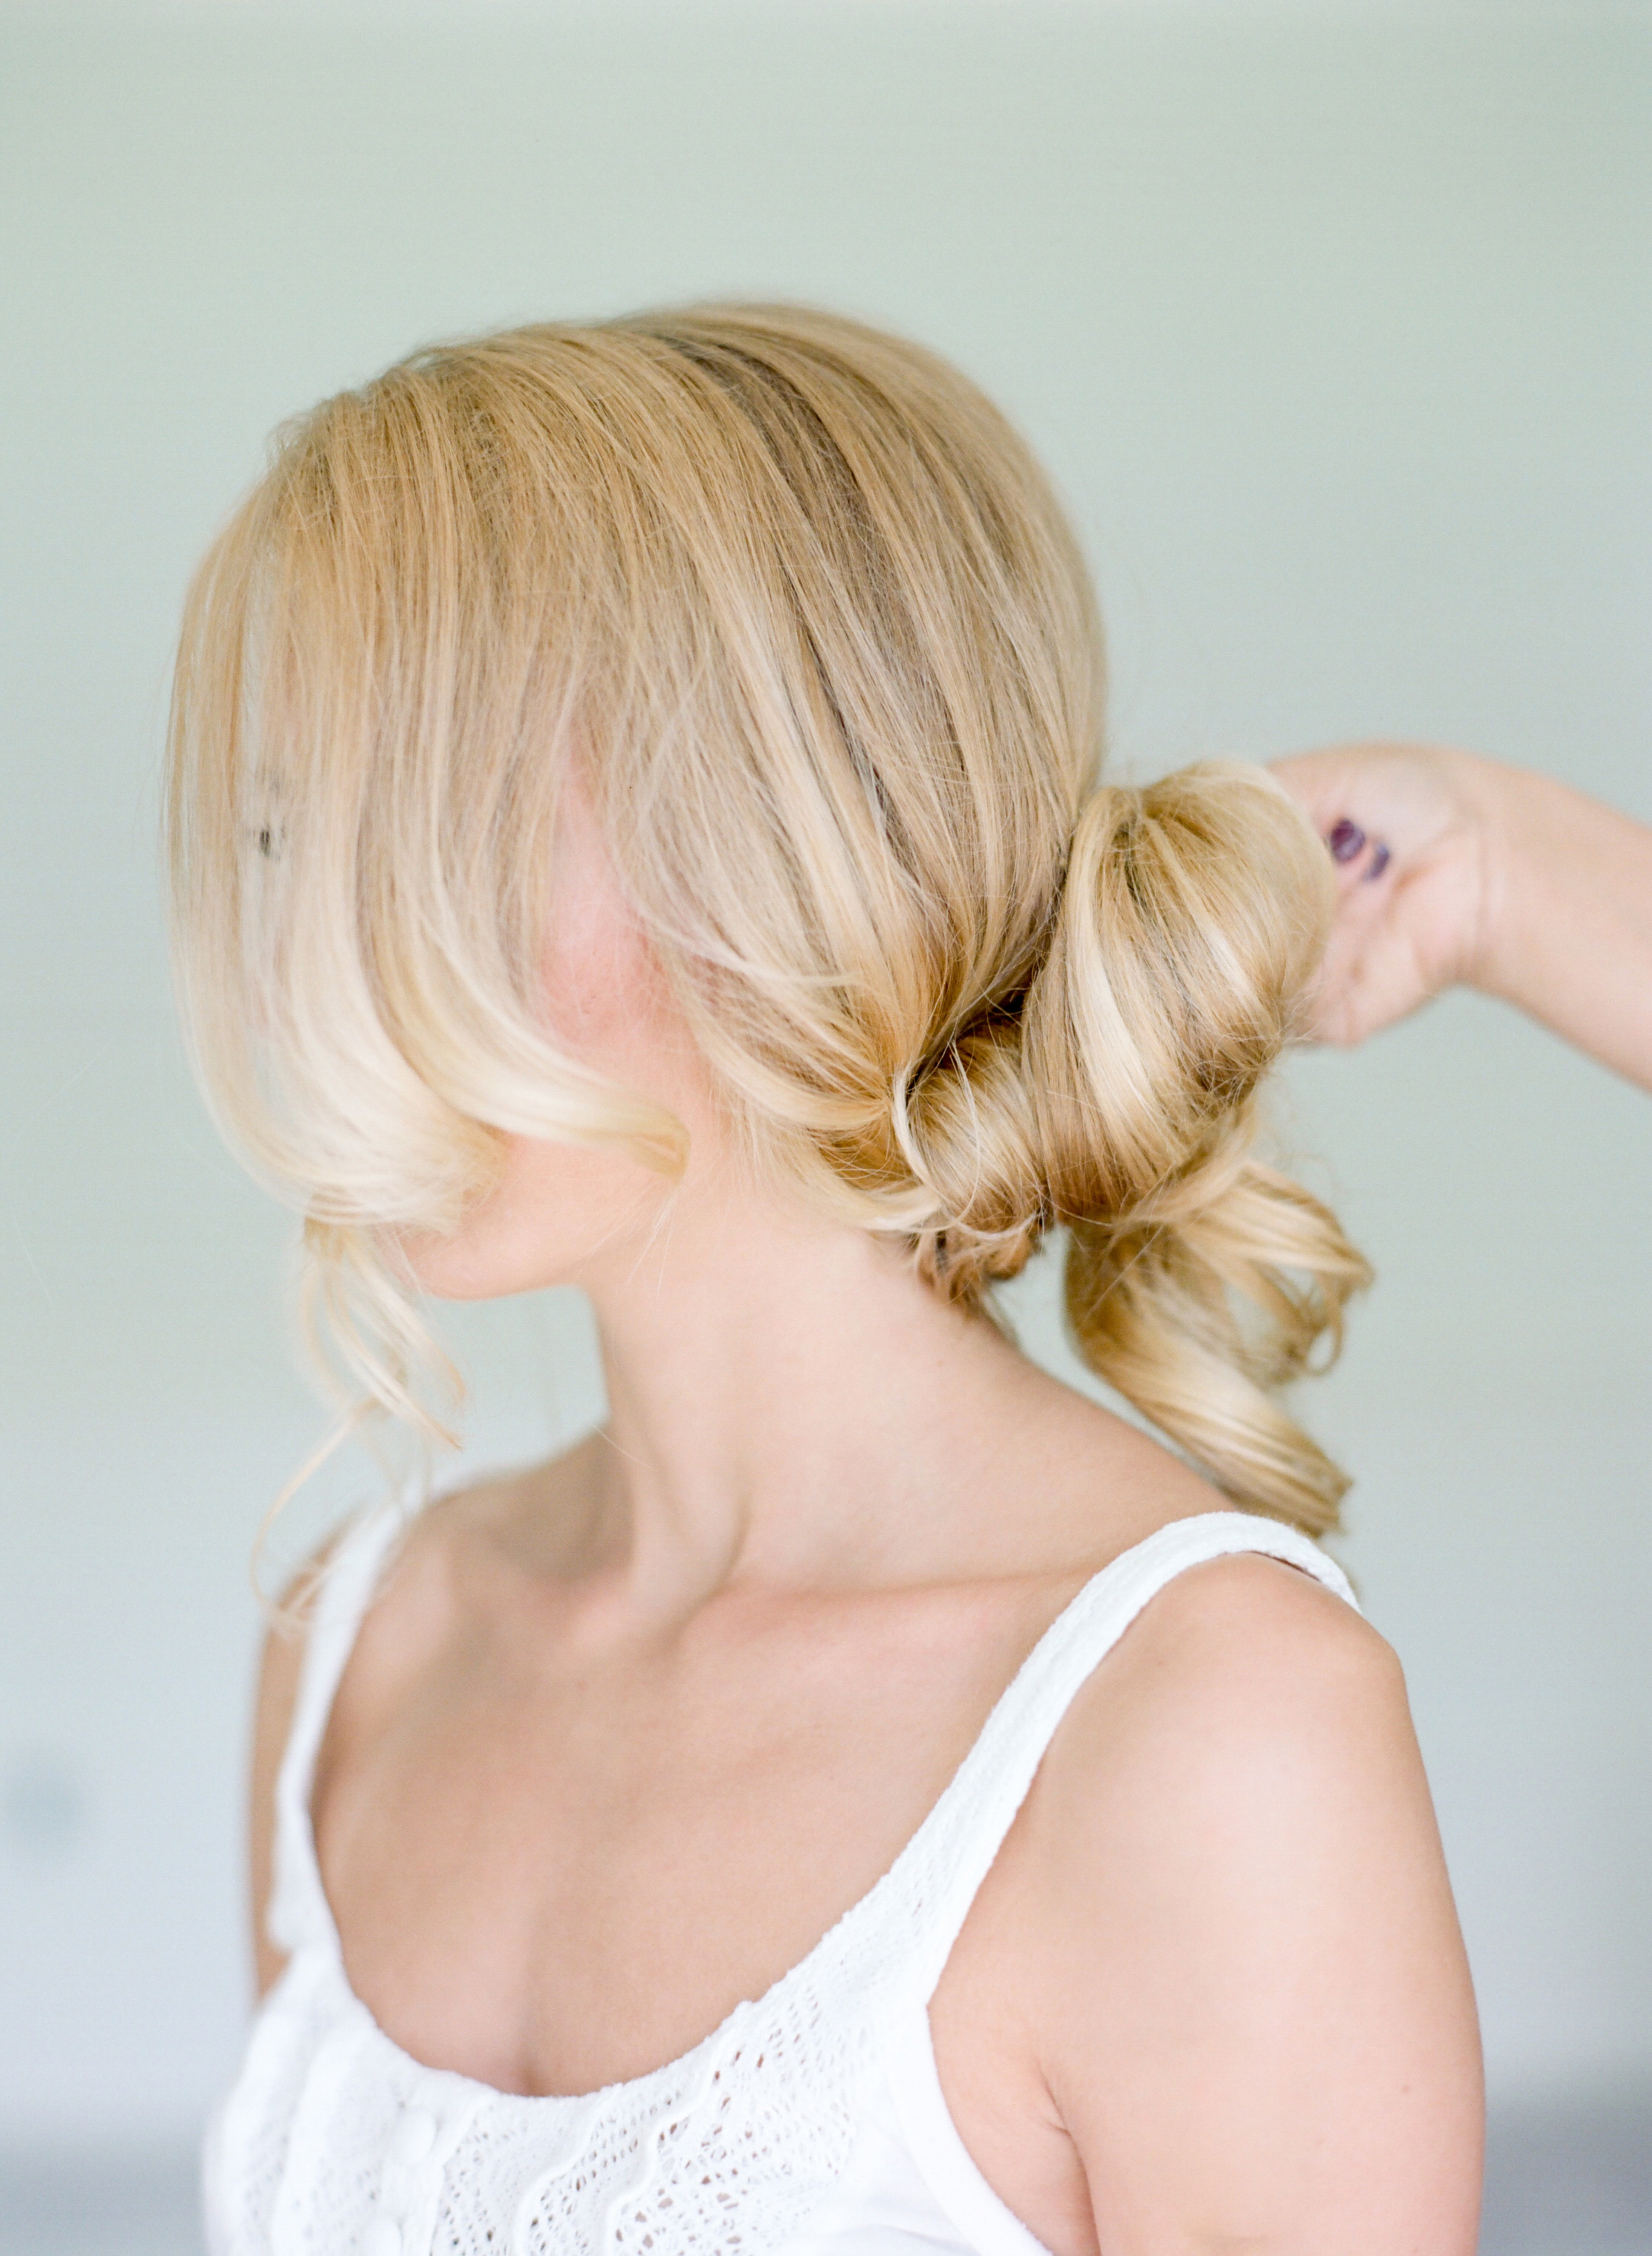 STEP THREE | Continue to twist and begin forming a bun around the clear elastic